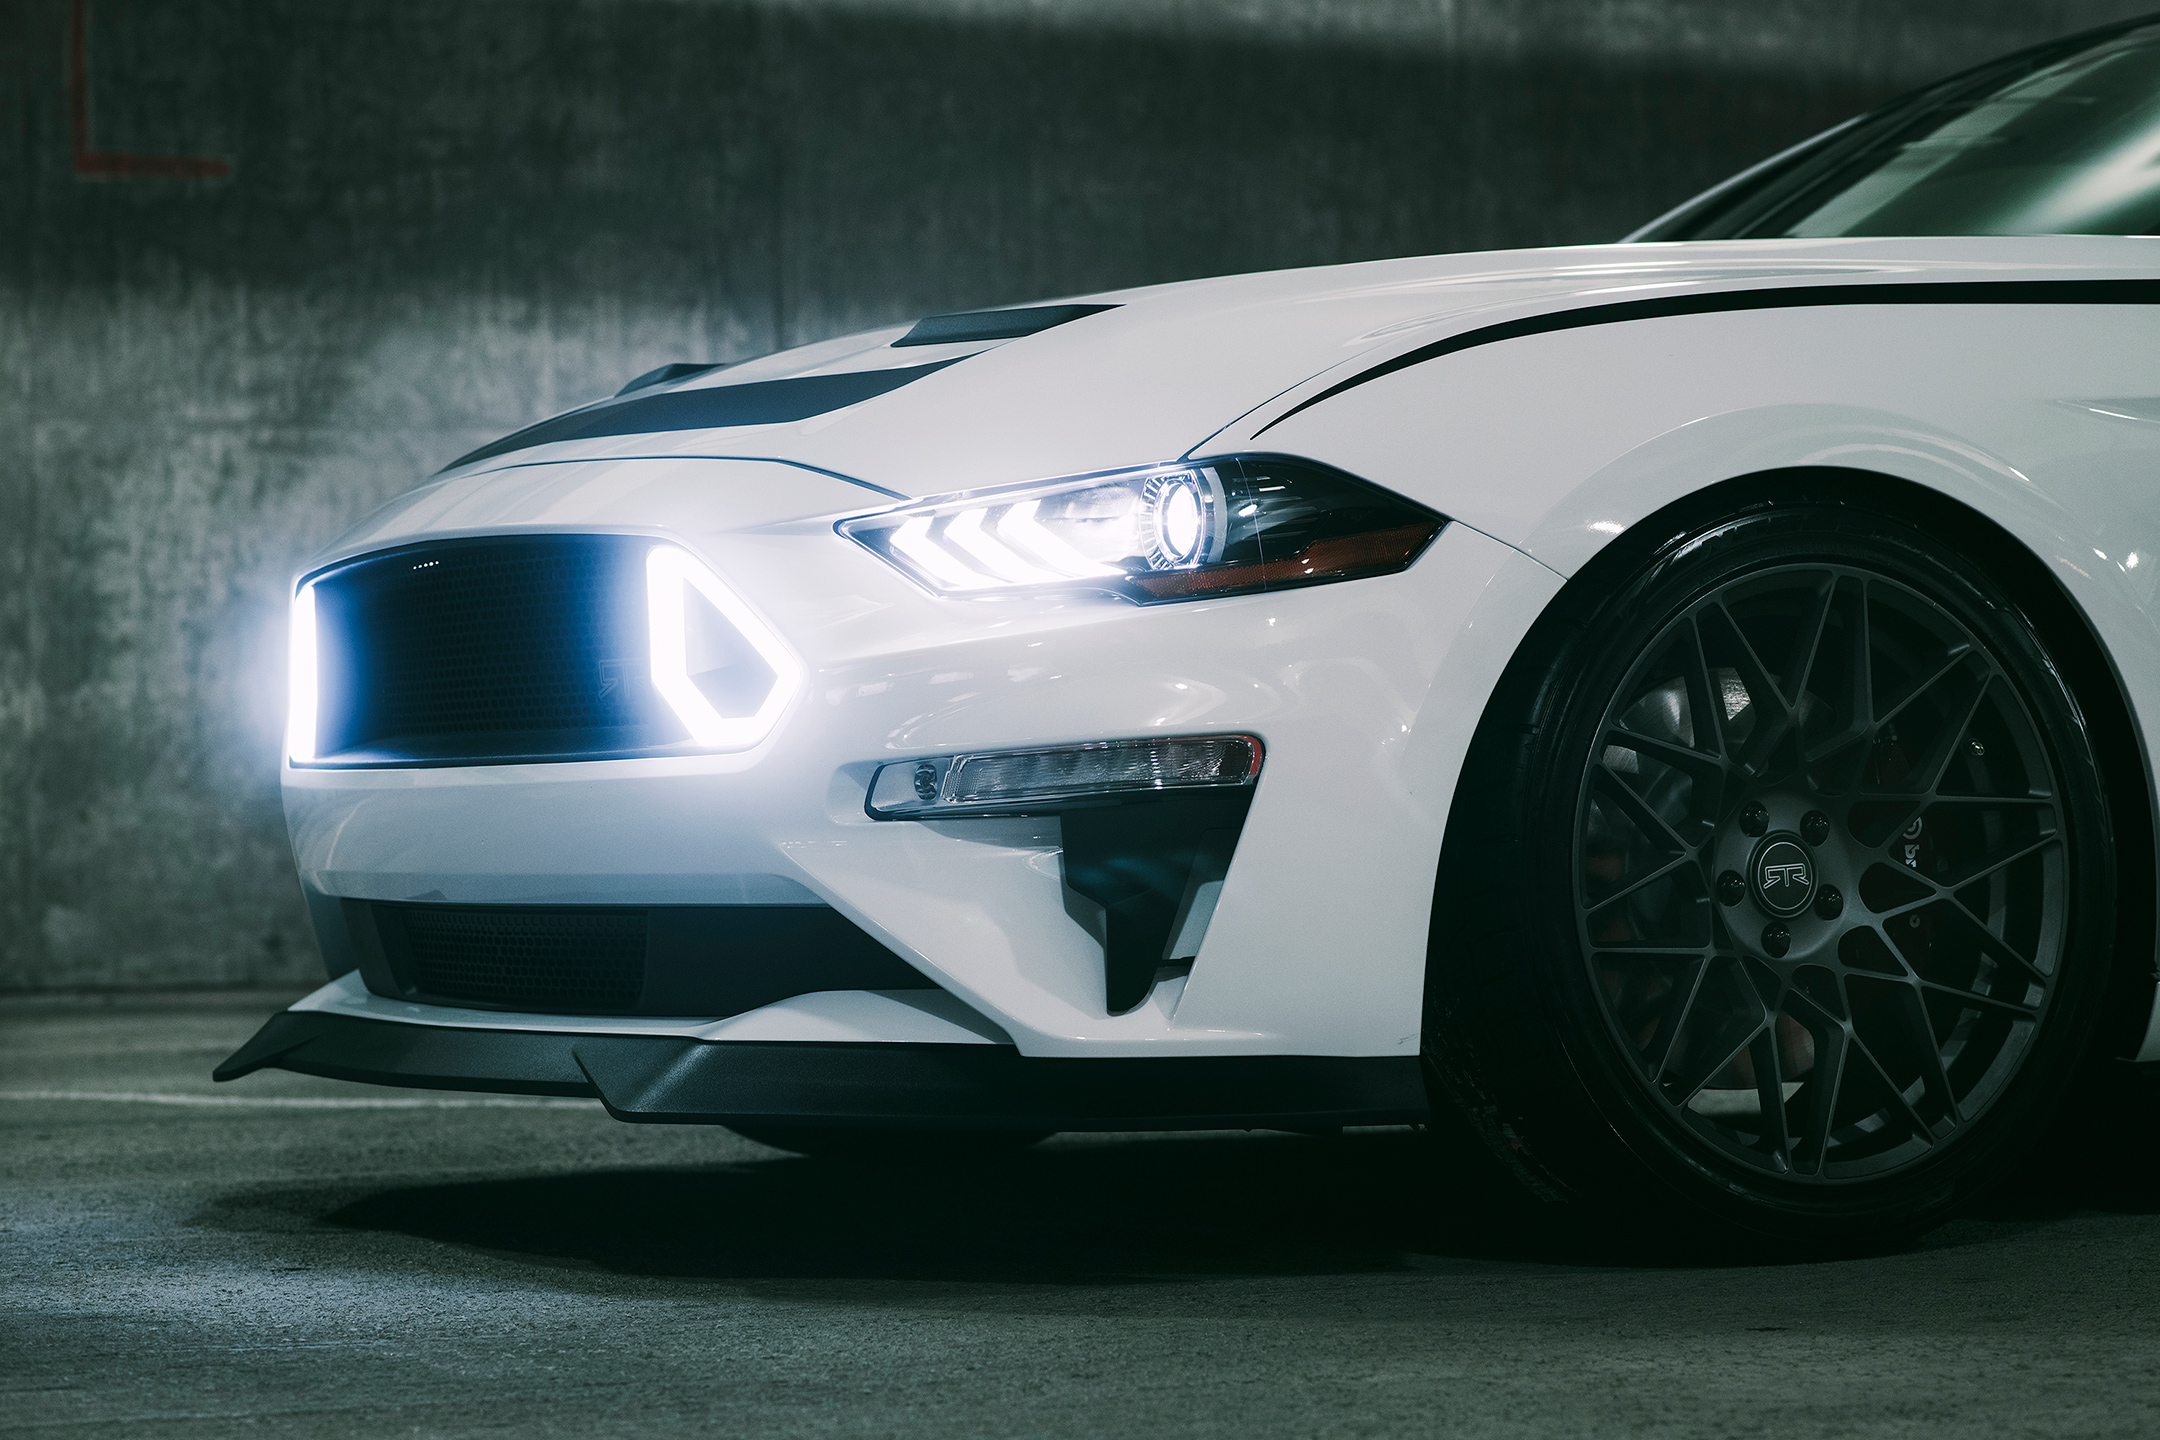 Ford Mustang RTR - 2018 - front light